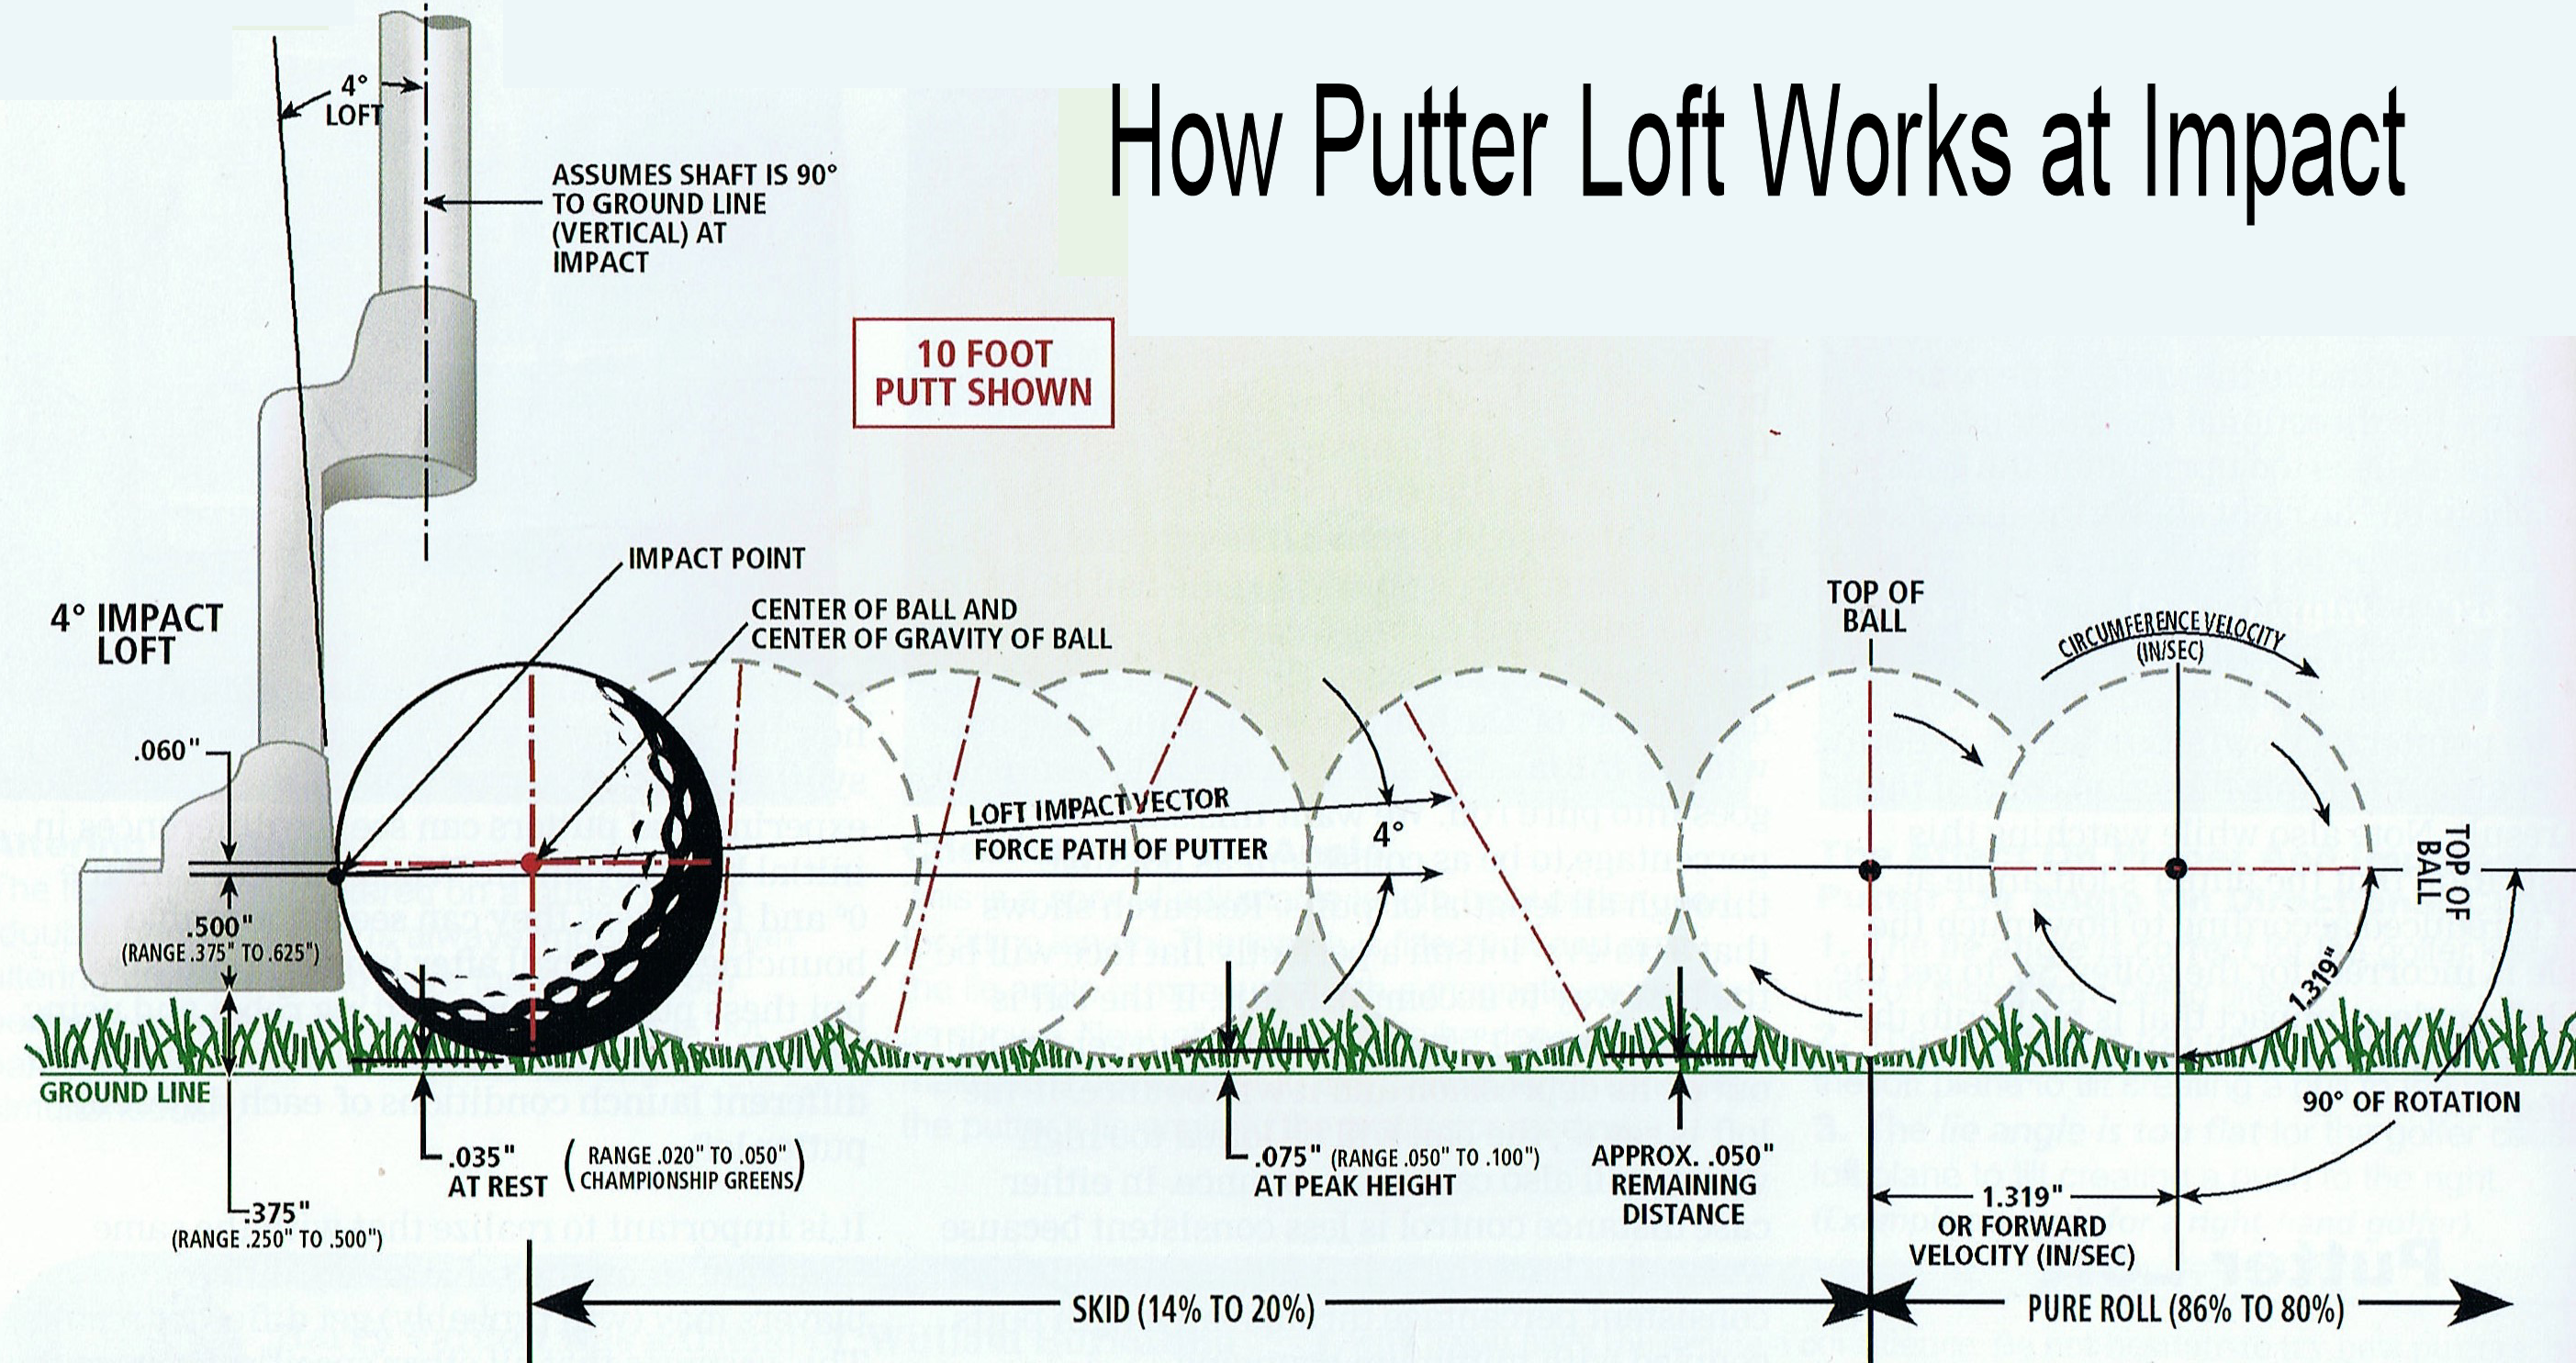 putter loft works at impact scanned copy from Maltby book